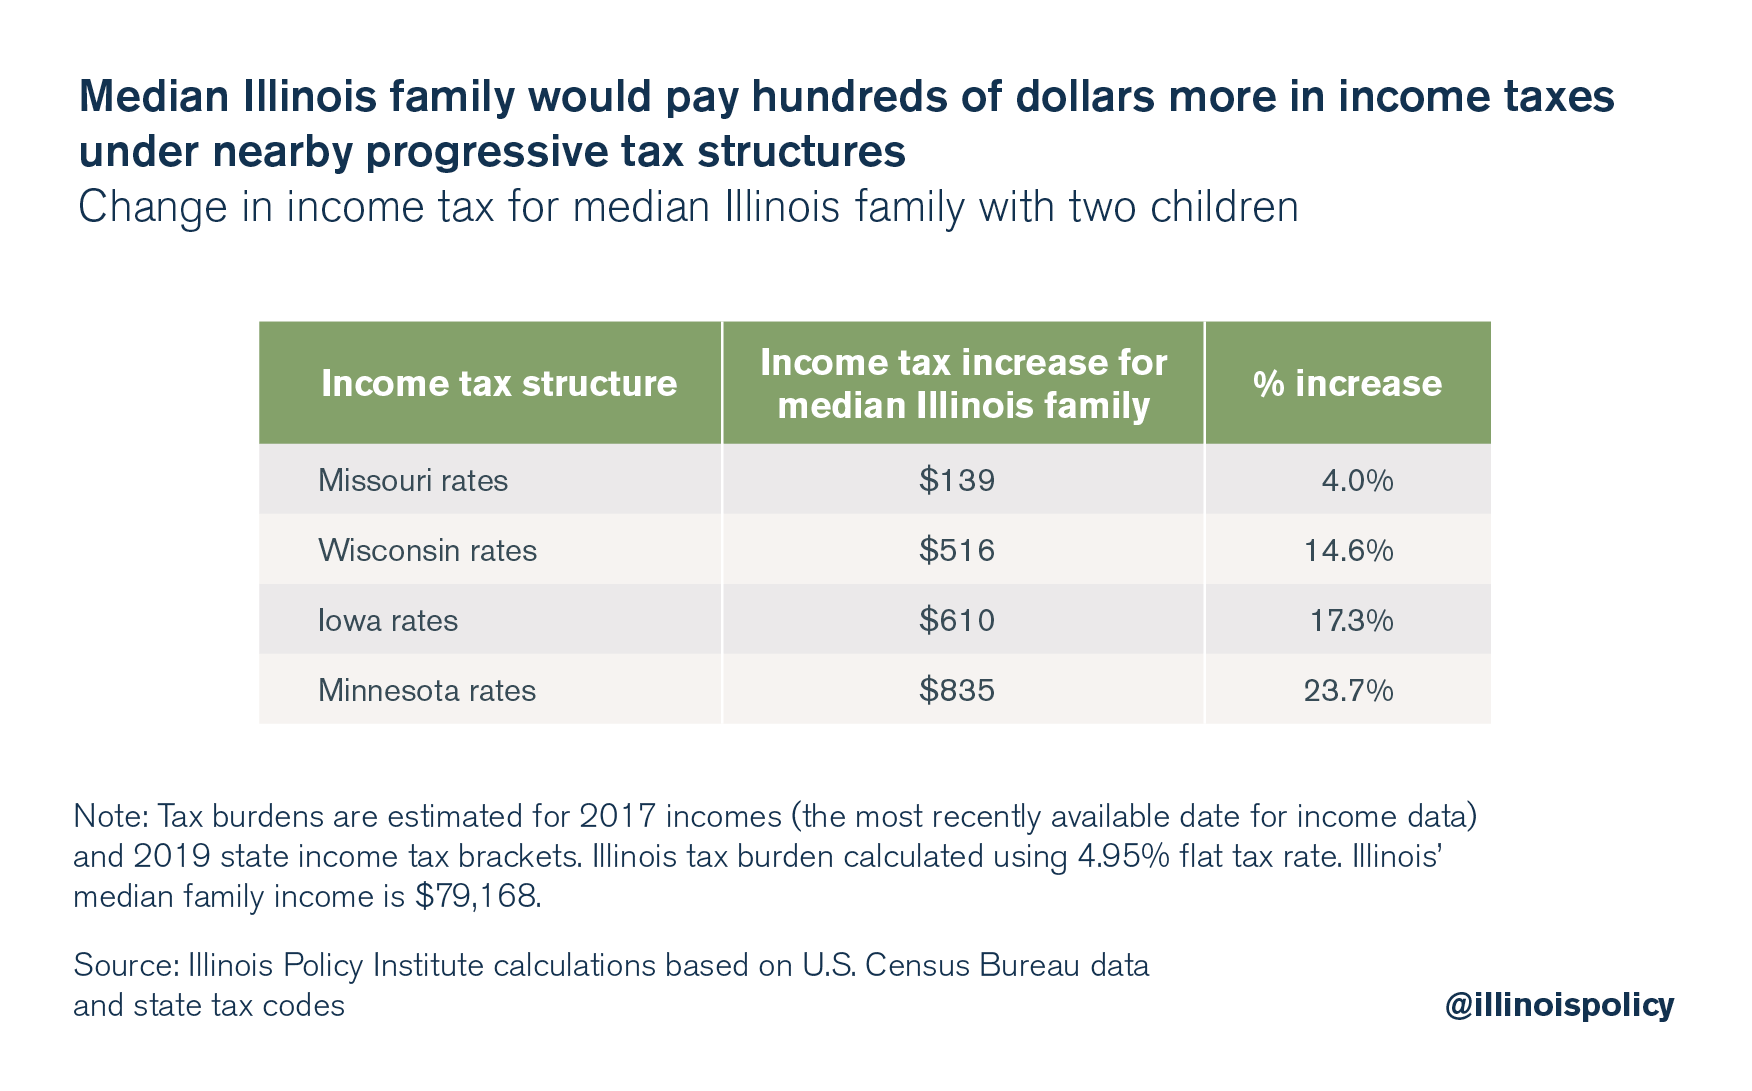 Median Illinois family would pay hundreds of dollars more in income taxes under nearby progressive tax structures